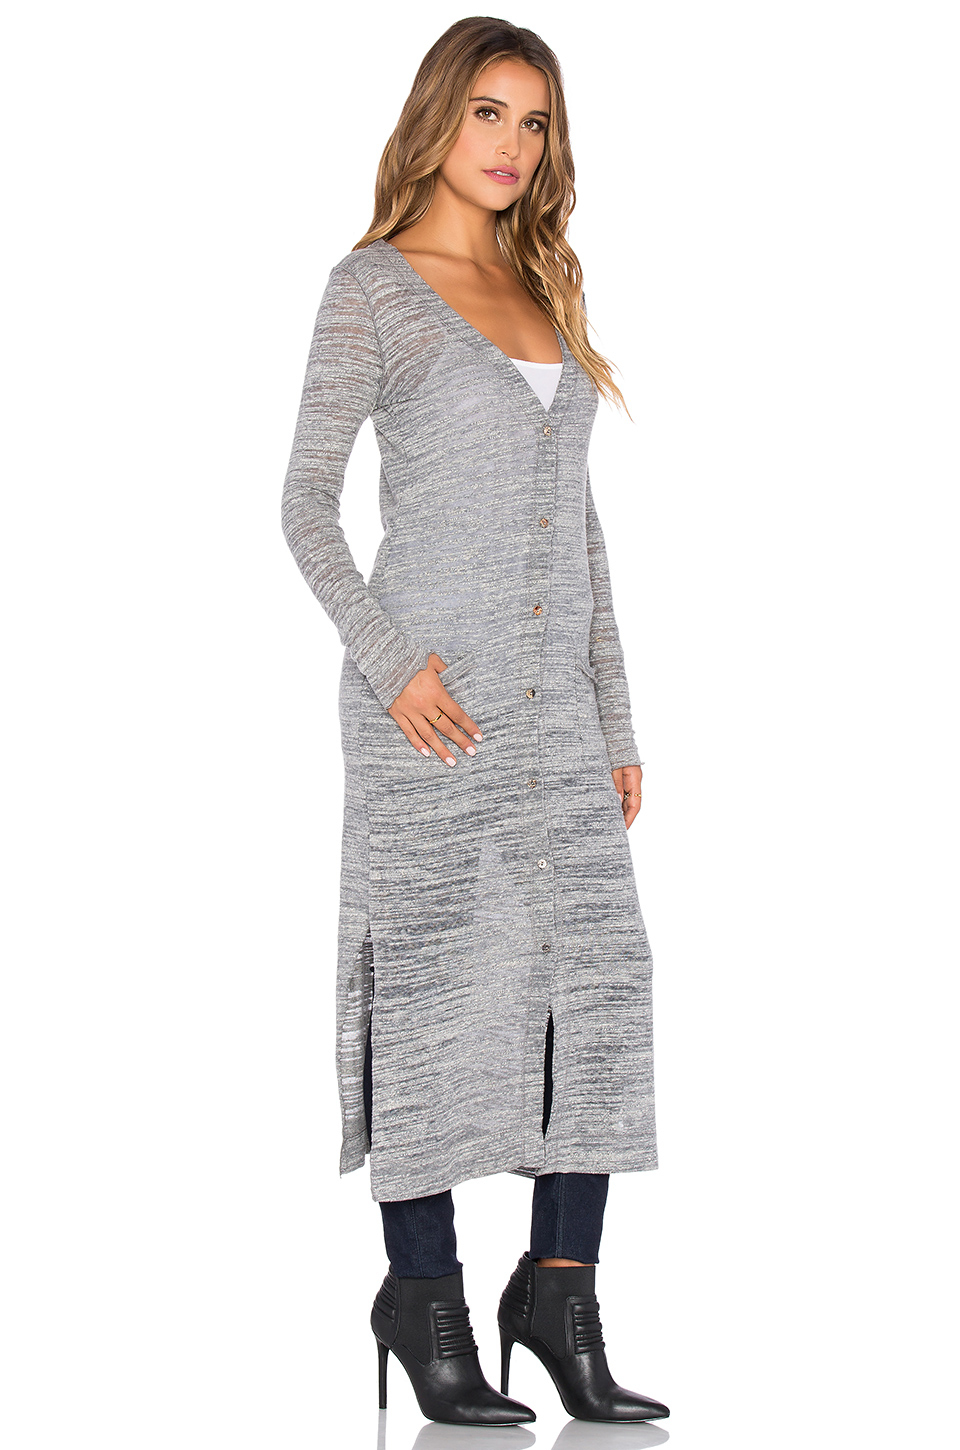 Lamade Cozy Slub Veneto Extra Long Cardigan in Gray | Lyst